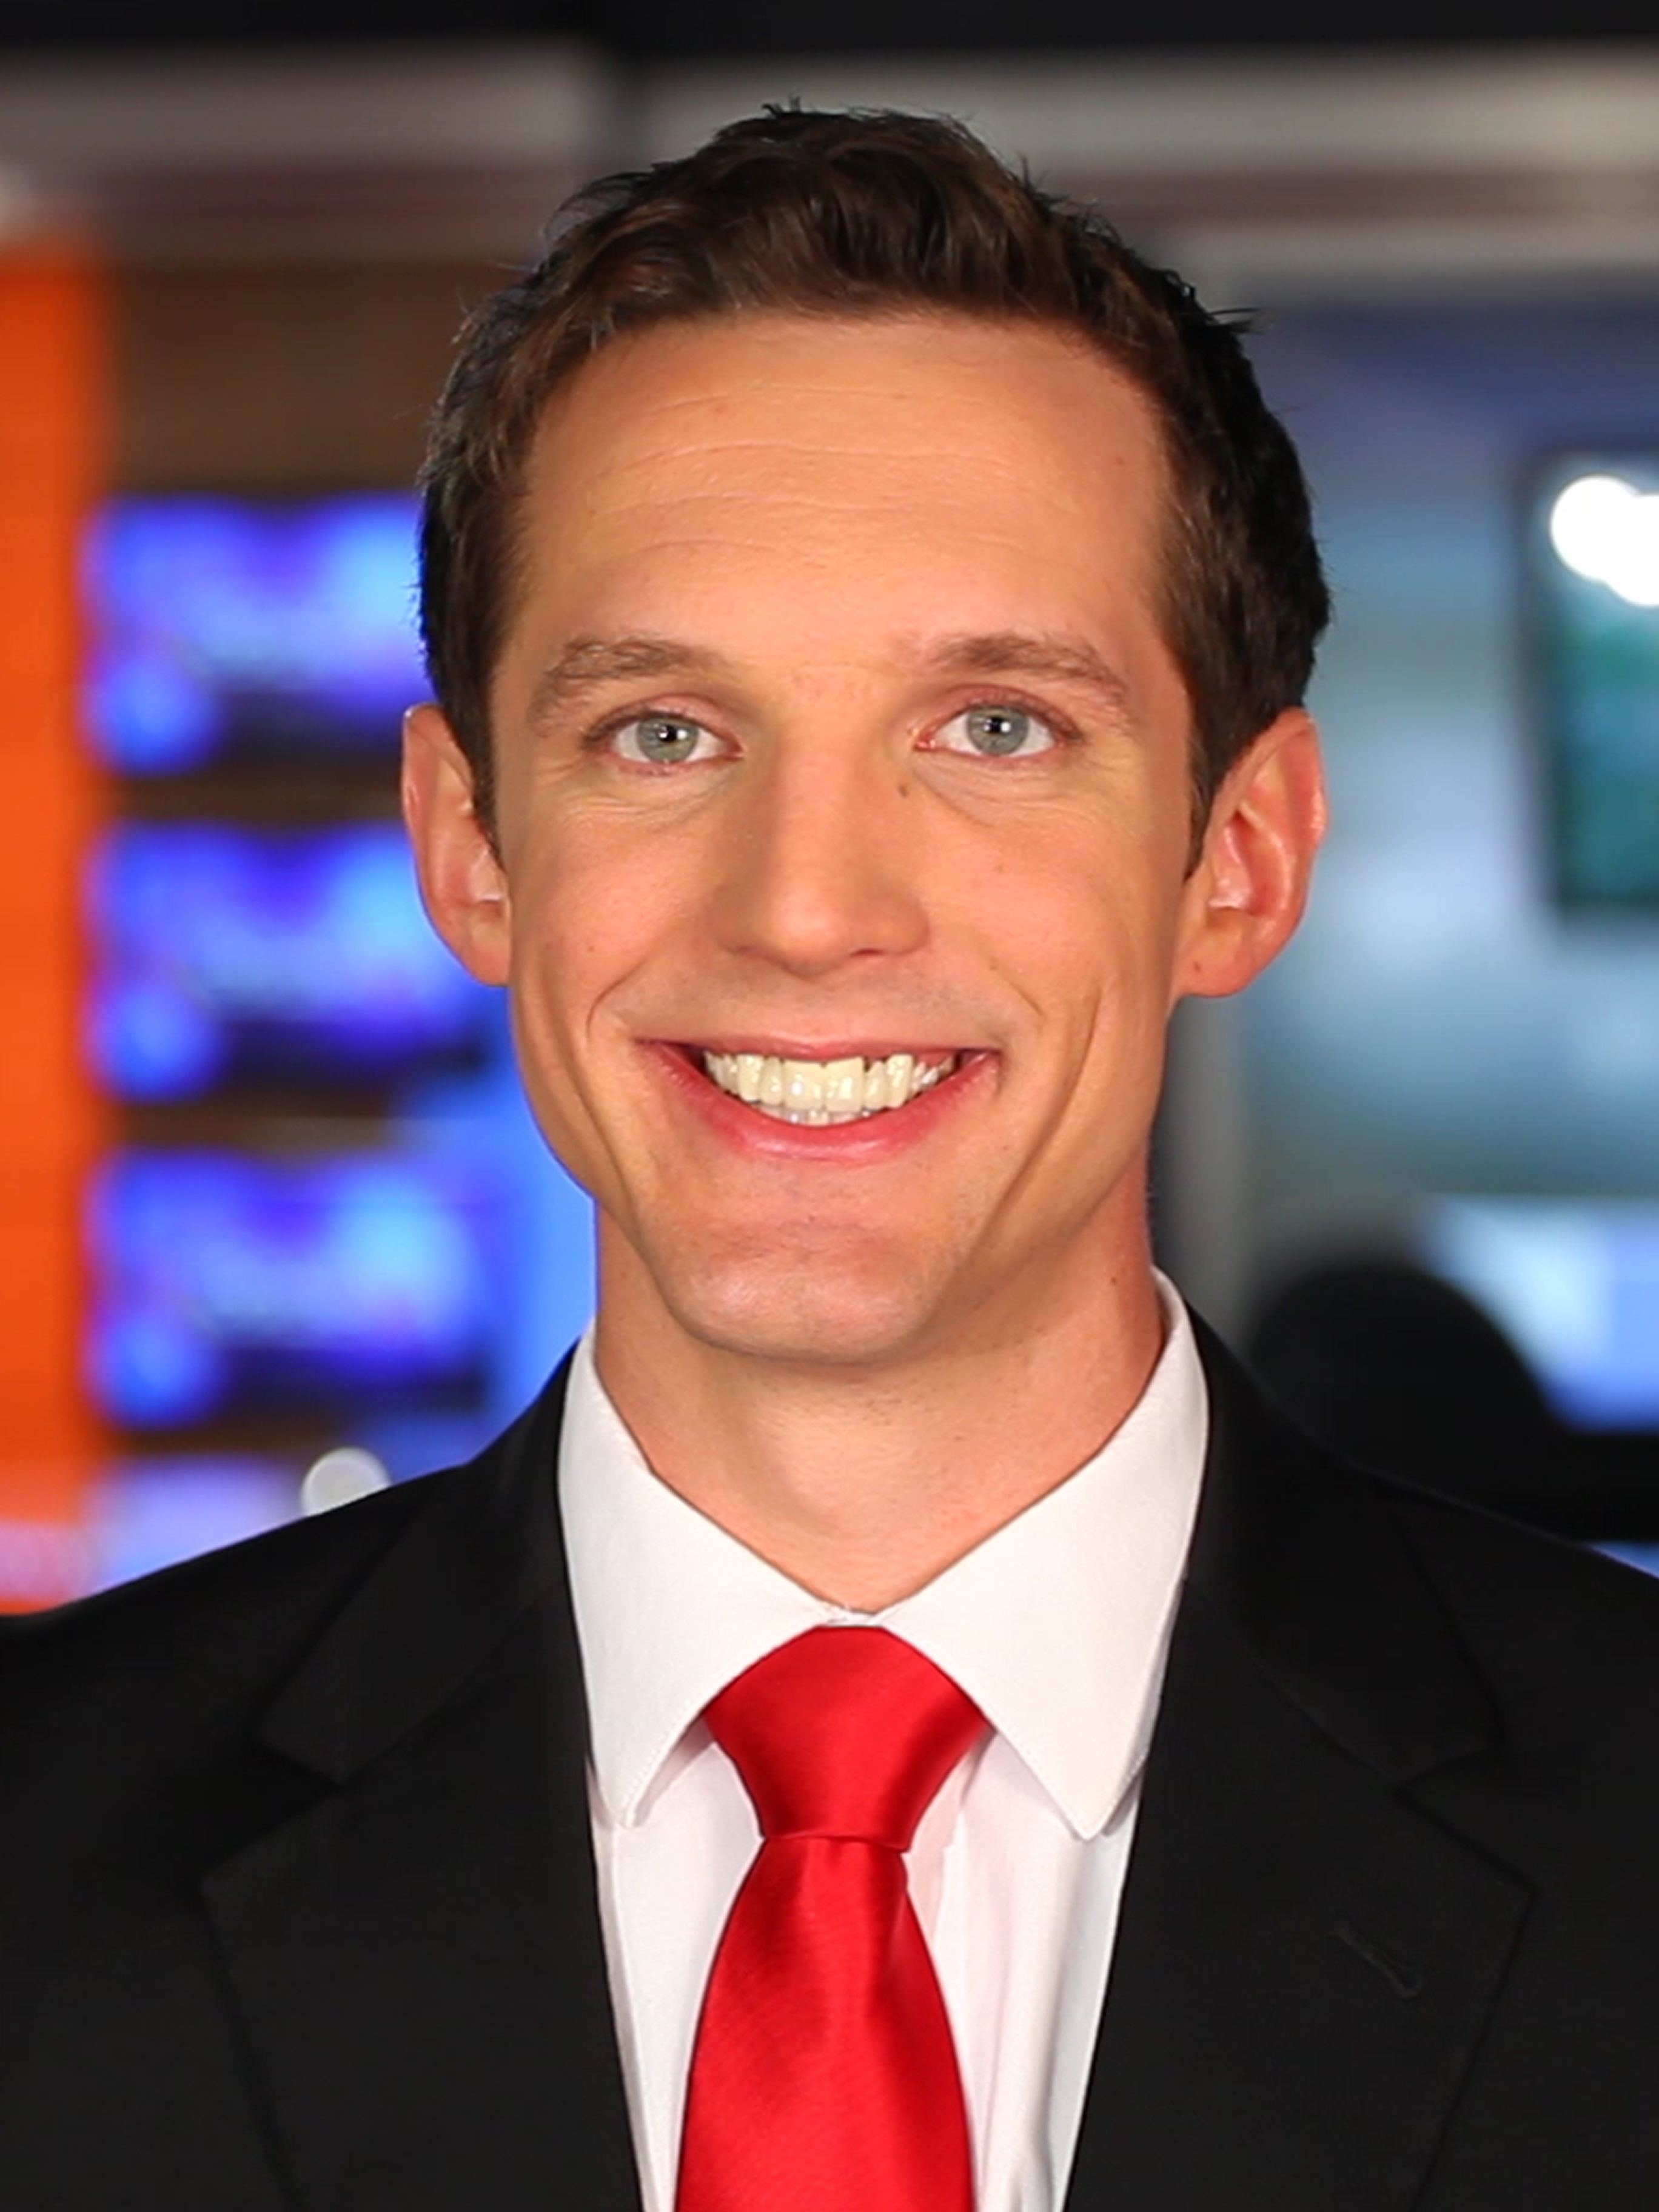 LOCAL TV STATIONS ADD TWO METEOROLOGISTS TO WEATHER TEAM